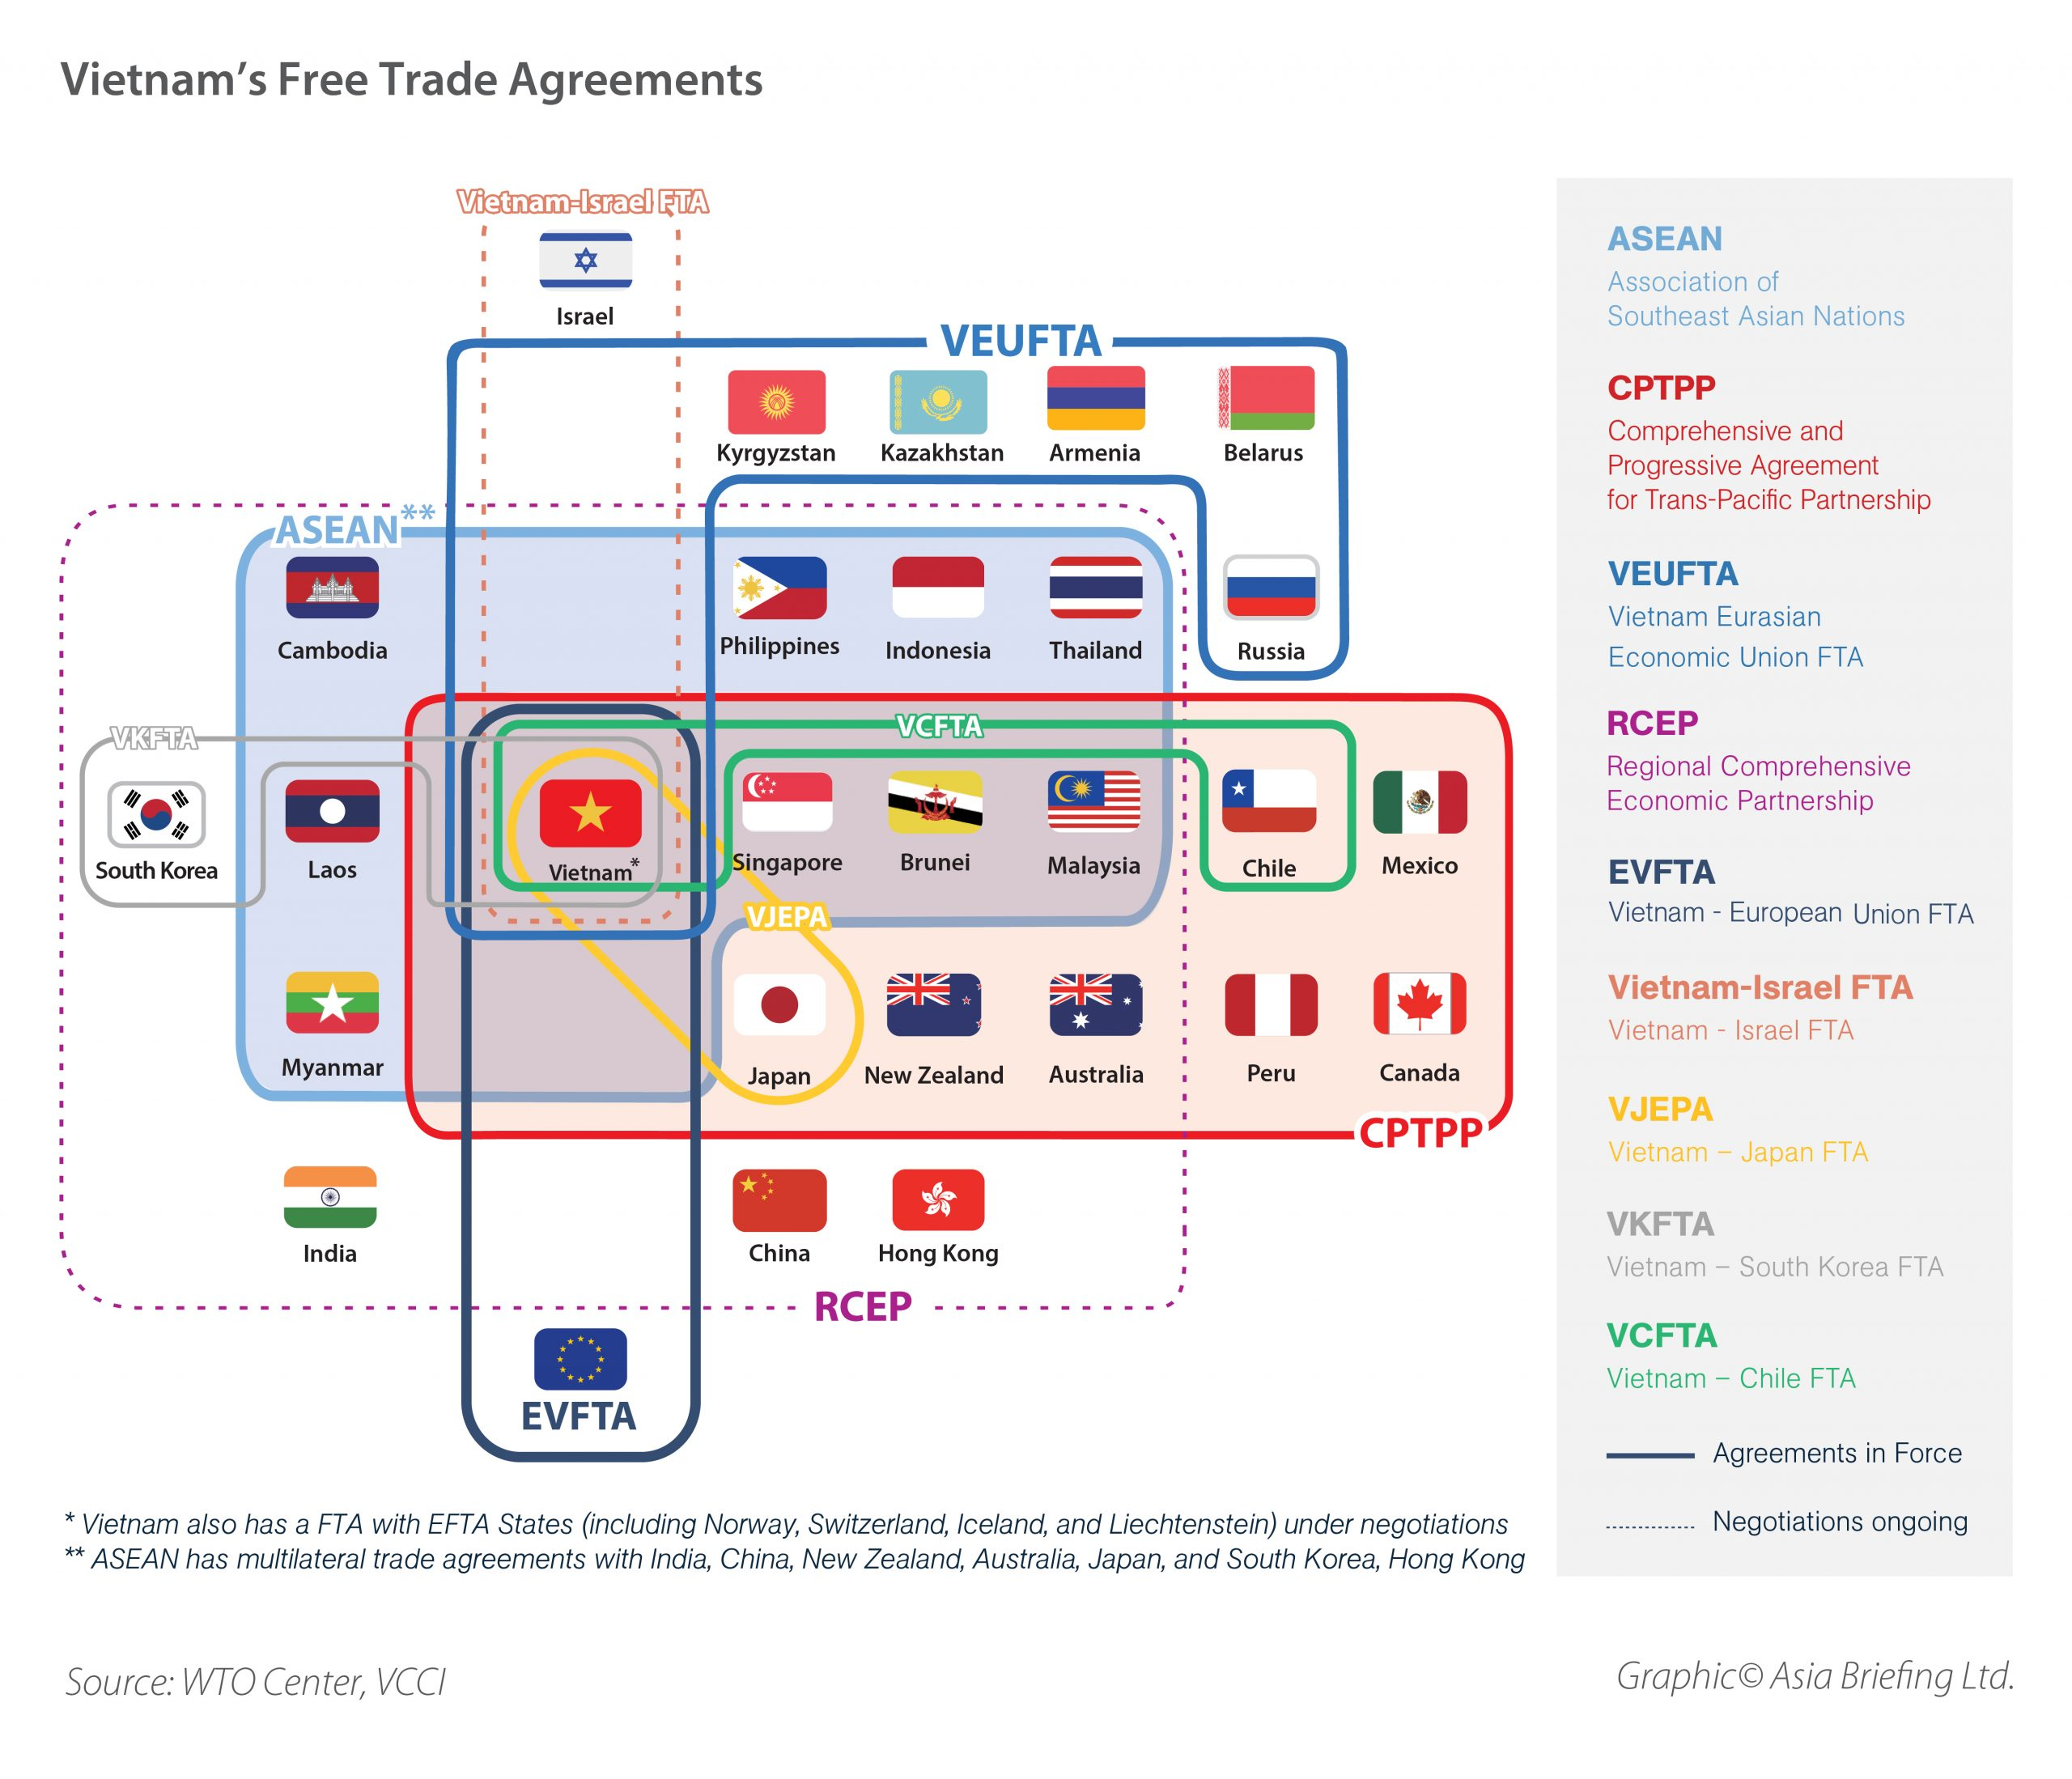 VN free trade agreement